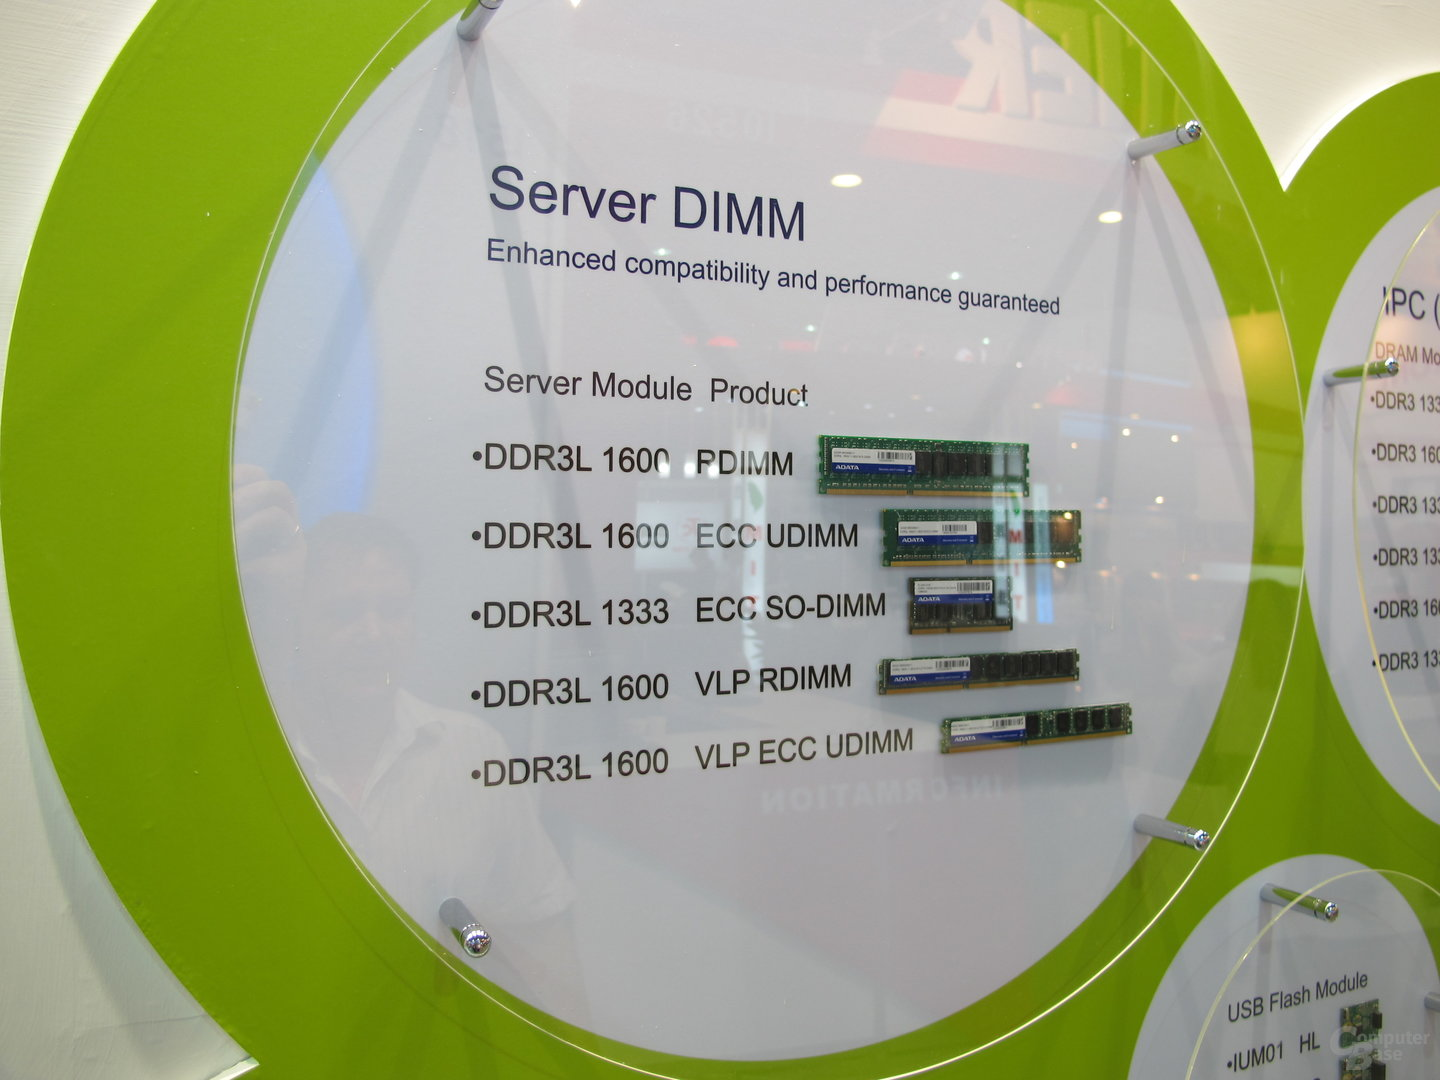 Server-DIMMs